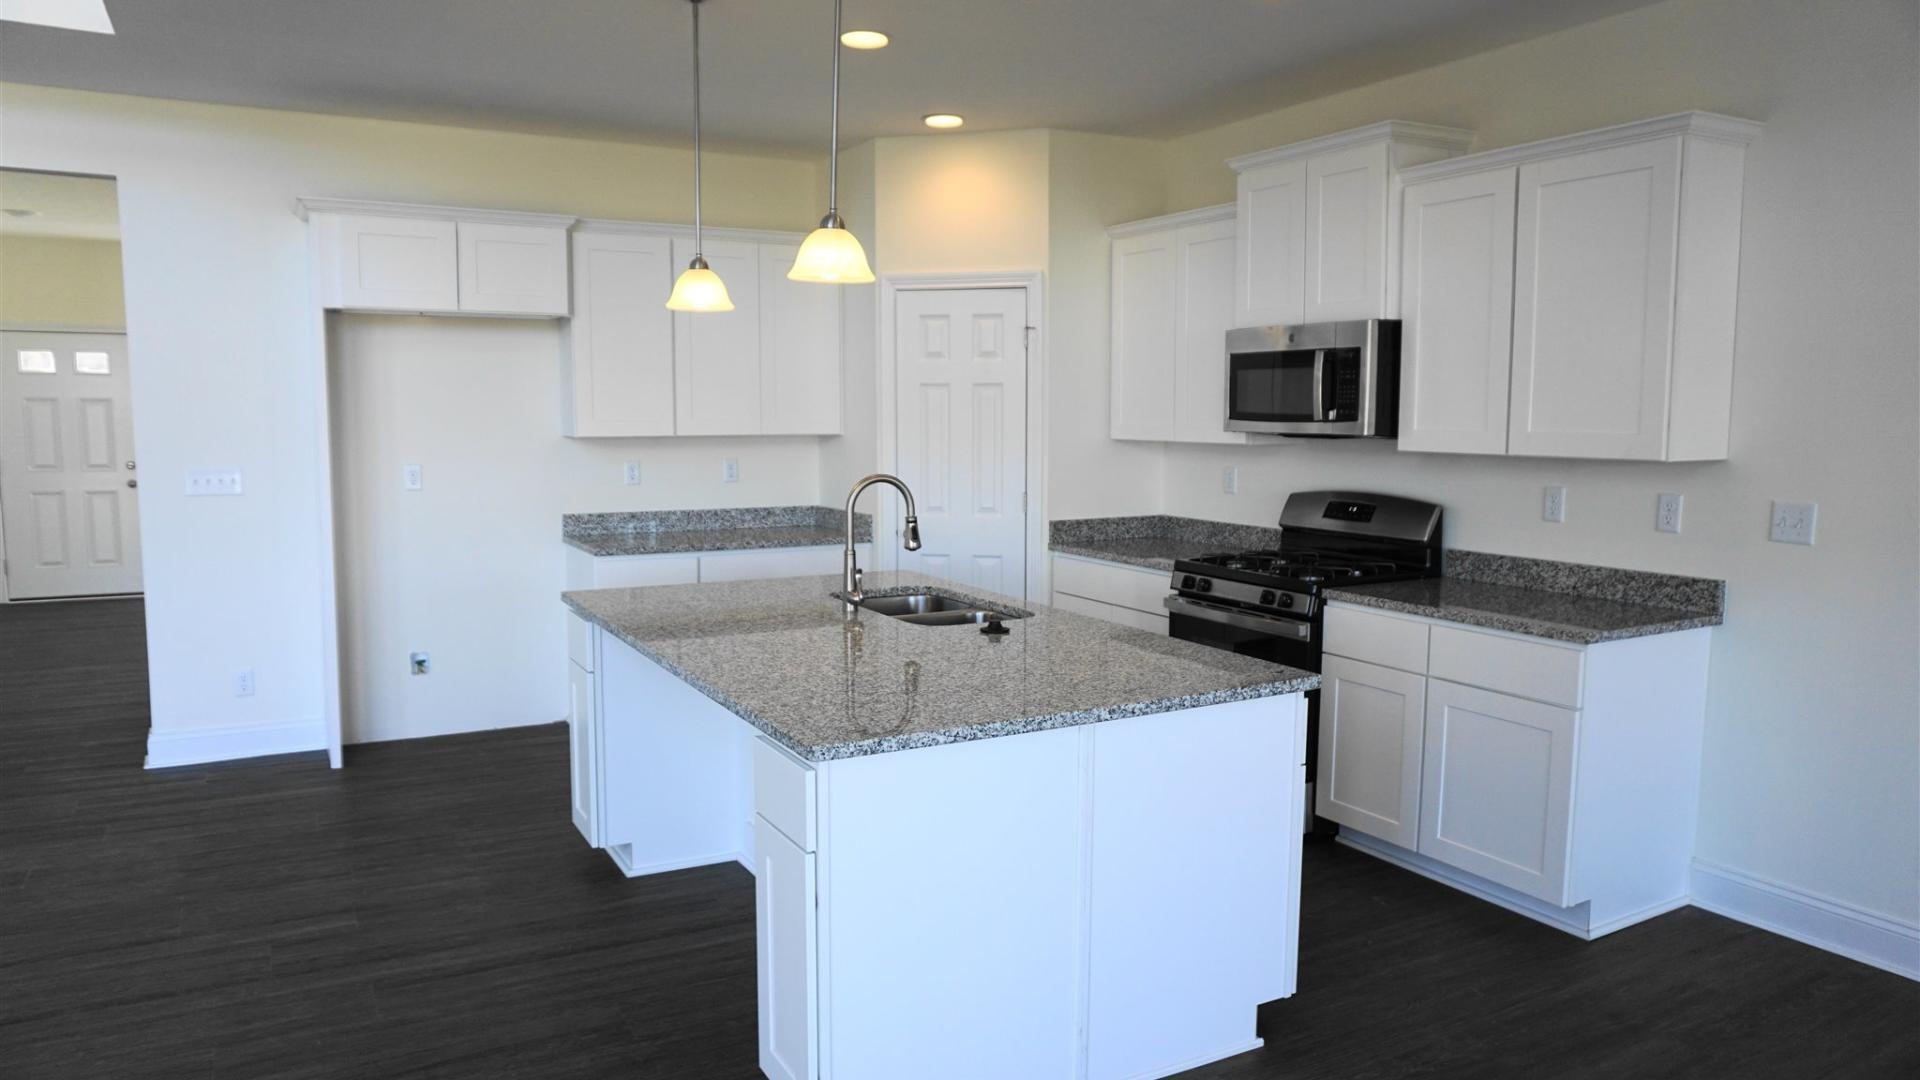 Kitchen featured in the Truman By Maronda Homes in Cincinnati, KY